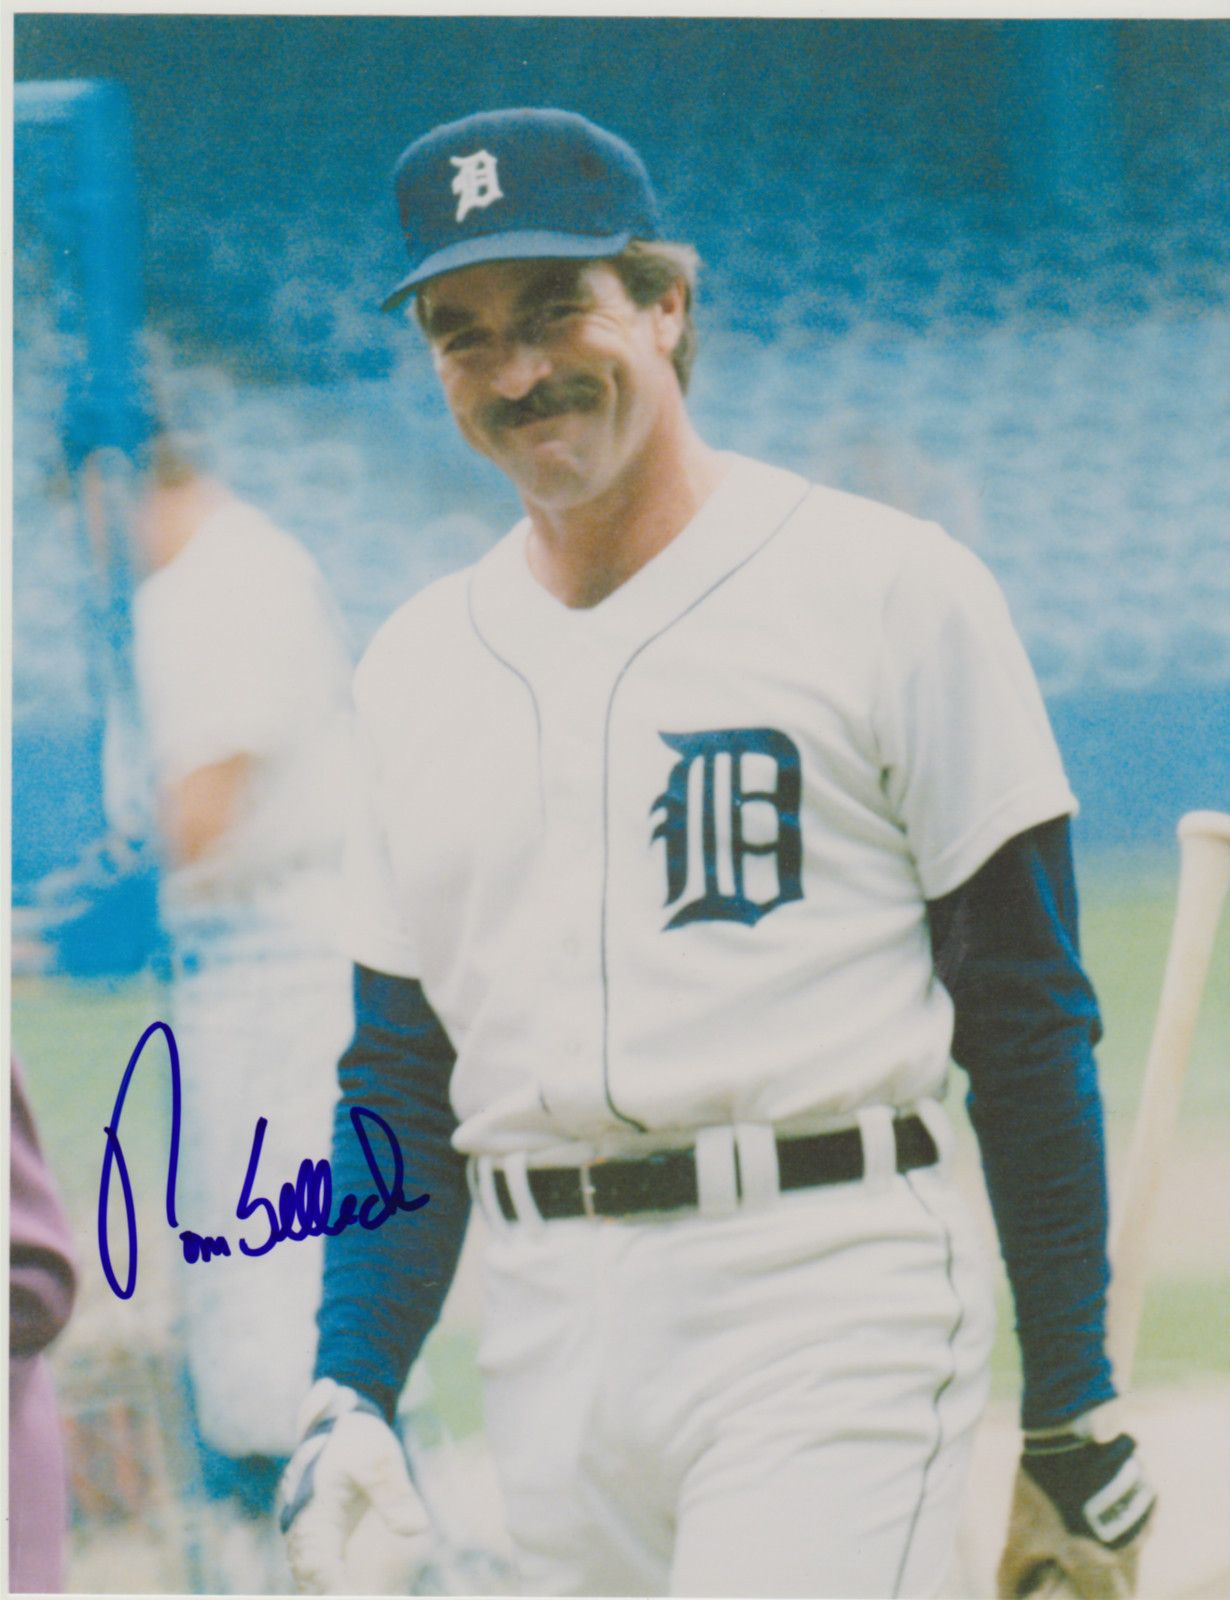 sports shoes 8b505 64d99 TOM WAS A MINOR OWNER OF THE TEAM: DETROIT TIGERS. TOM WAS ...